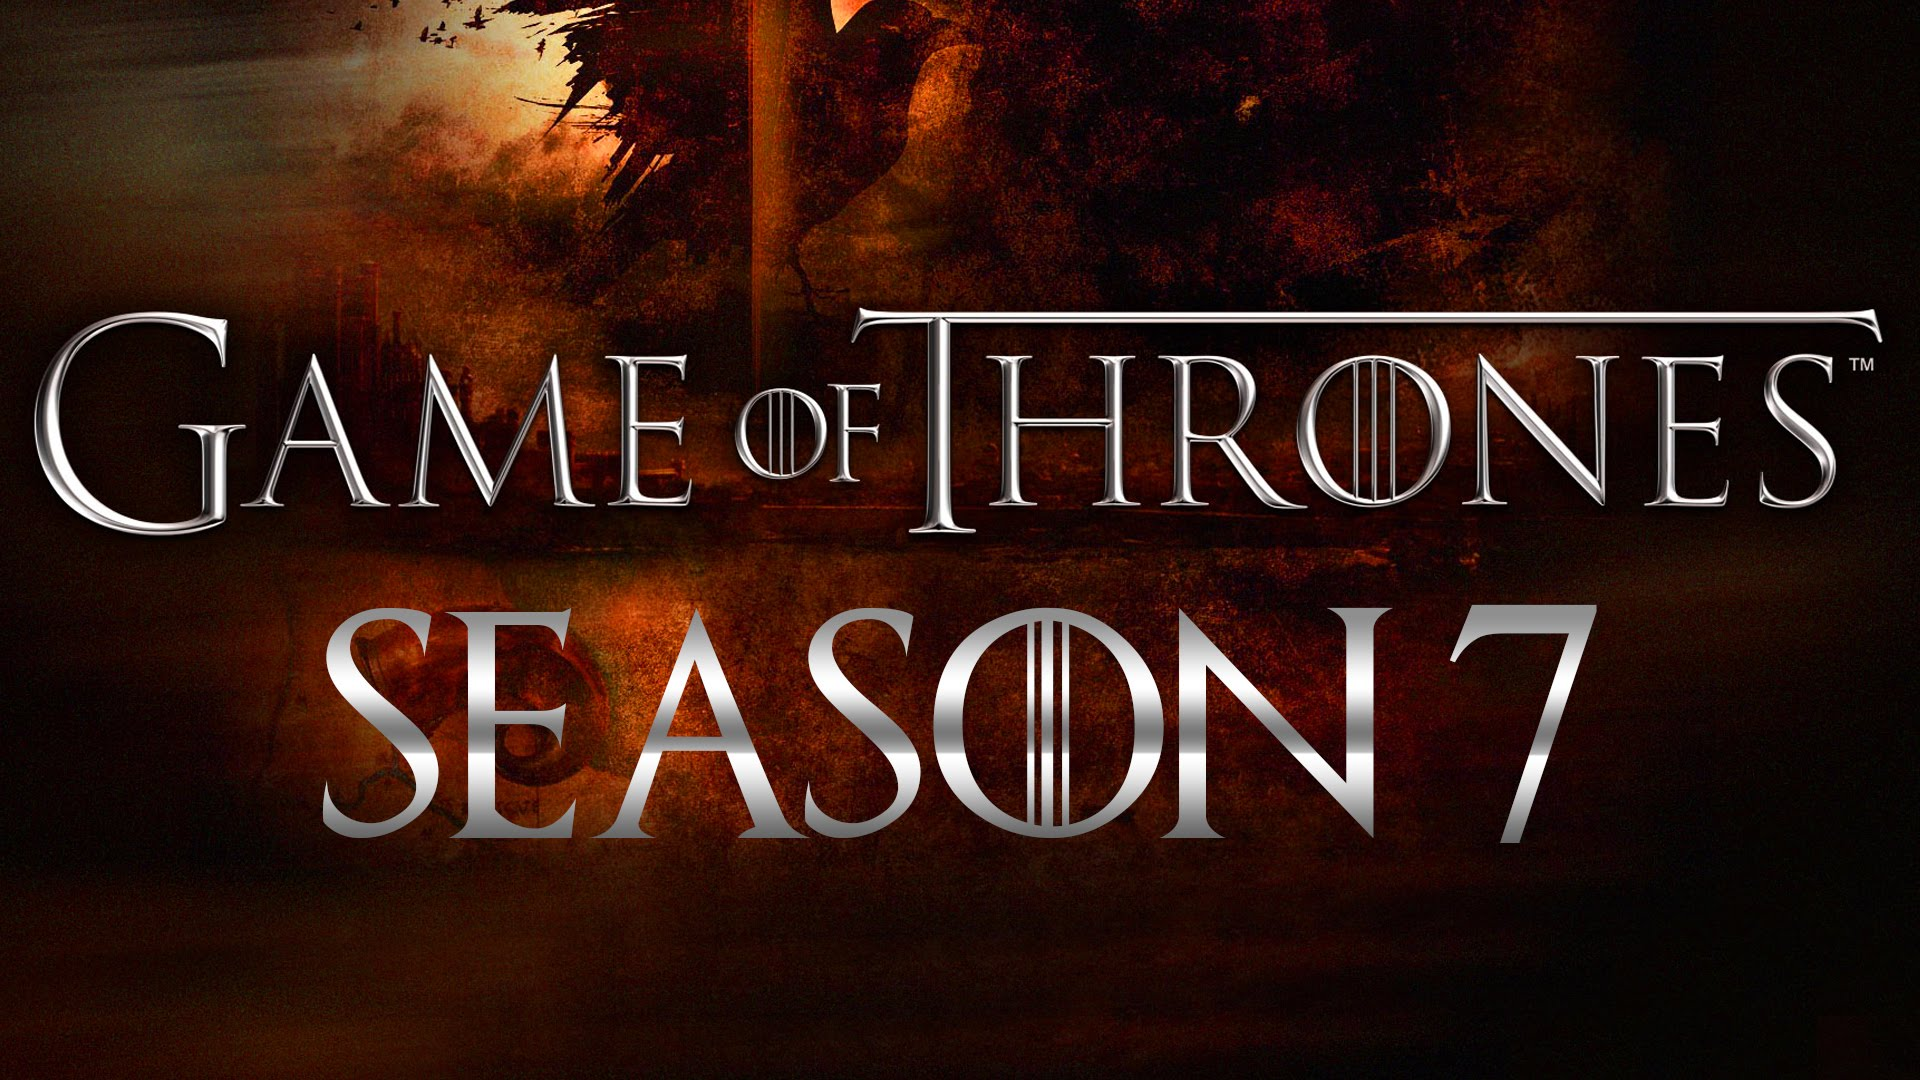 Game of Thrones S06E07 –The Broken Man, serial online subtitrat